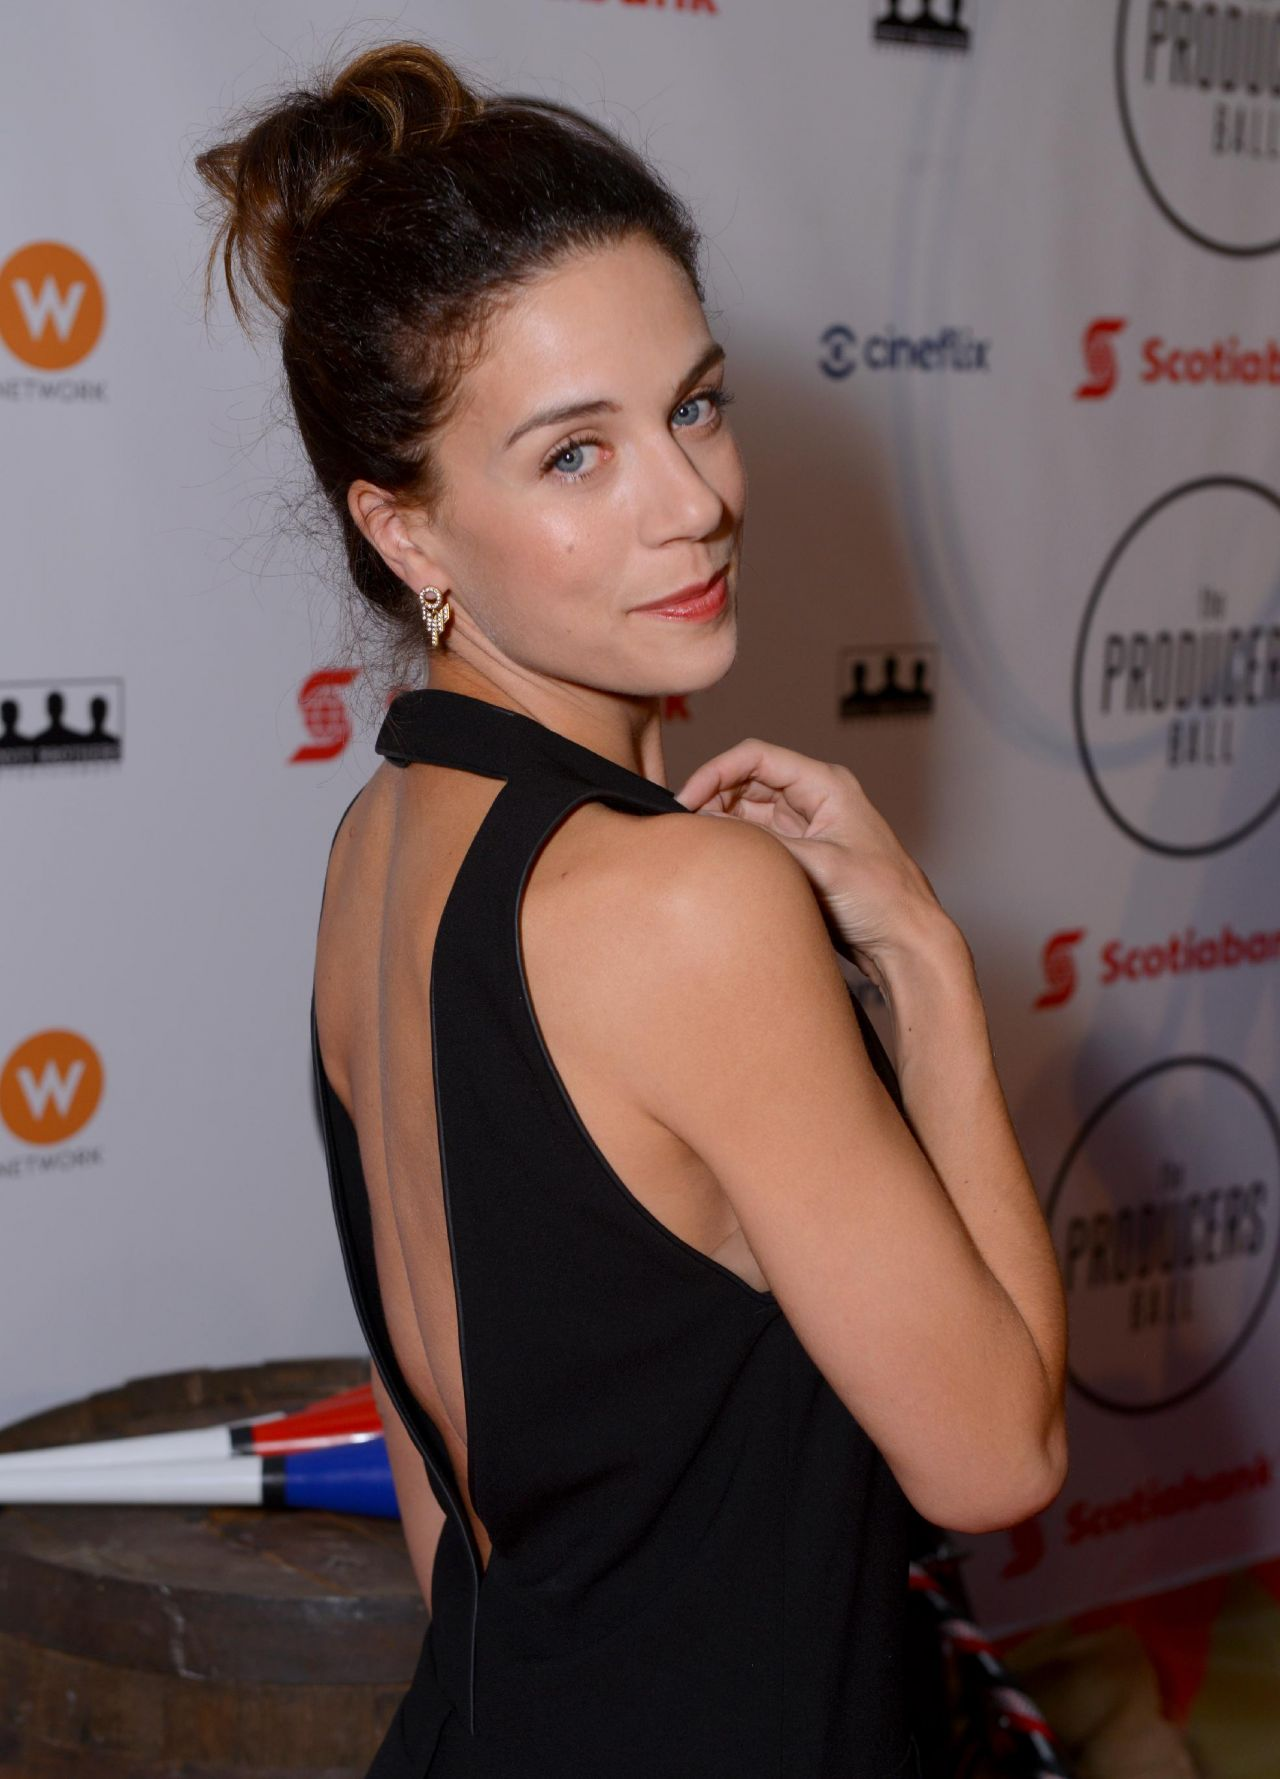 Melanie Merkosky - Producers Ball at the Royal Ontario Museum - September 2014